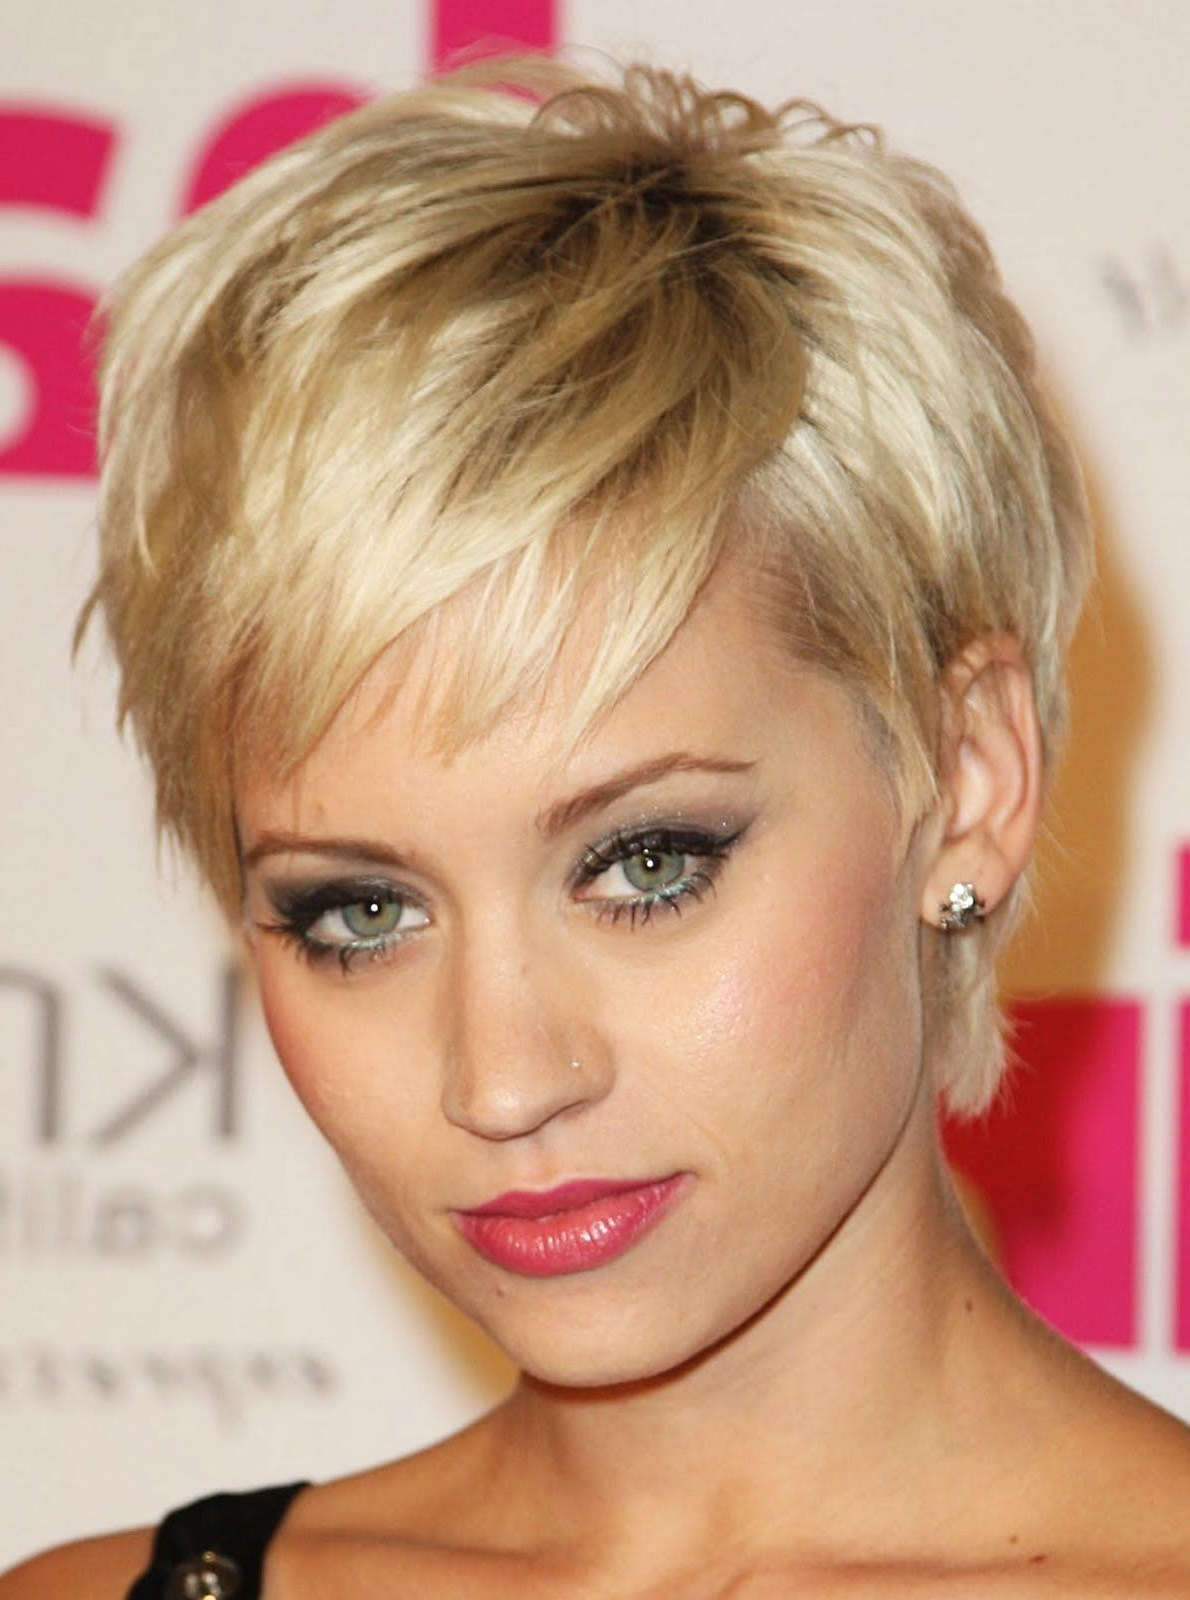 Short Hairstyles For Oval Faces | Hair Cut | Pinterest | Short Hair Pertaining To Trendy Short Hairstyles For Thin Hair (View 8 of 25)